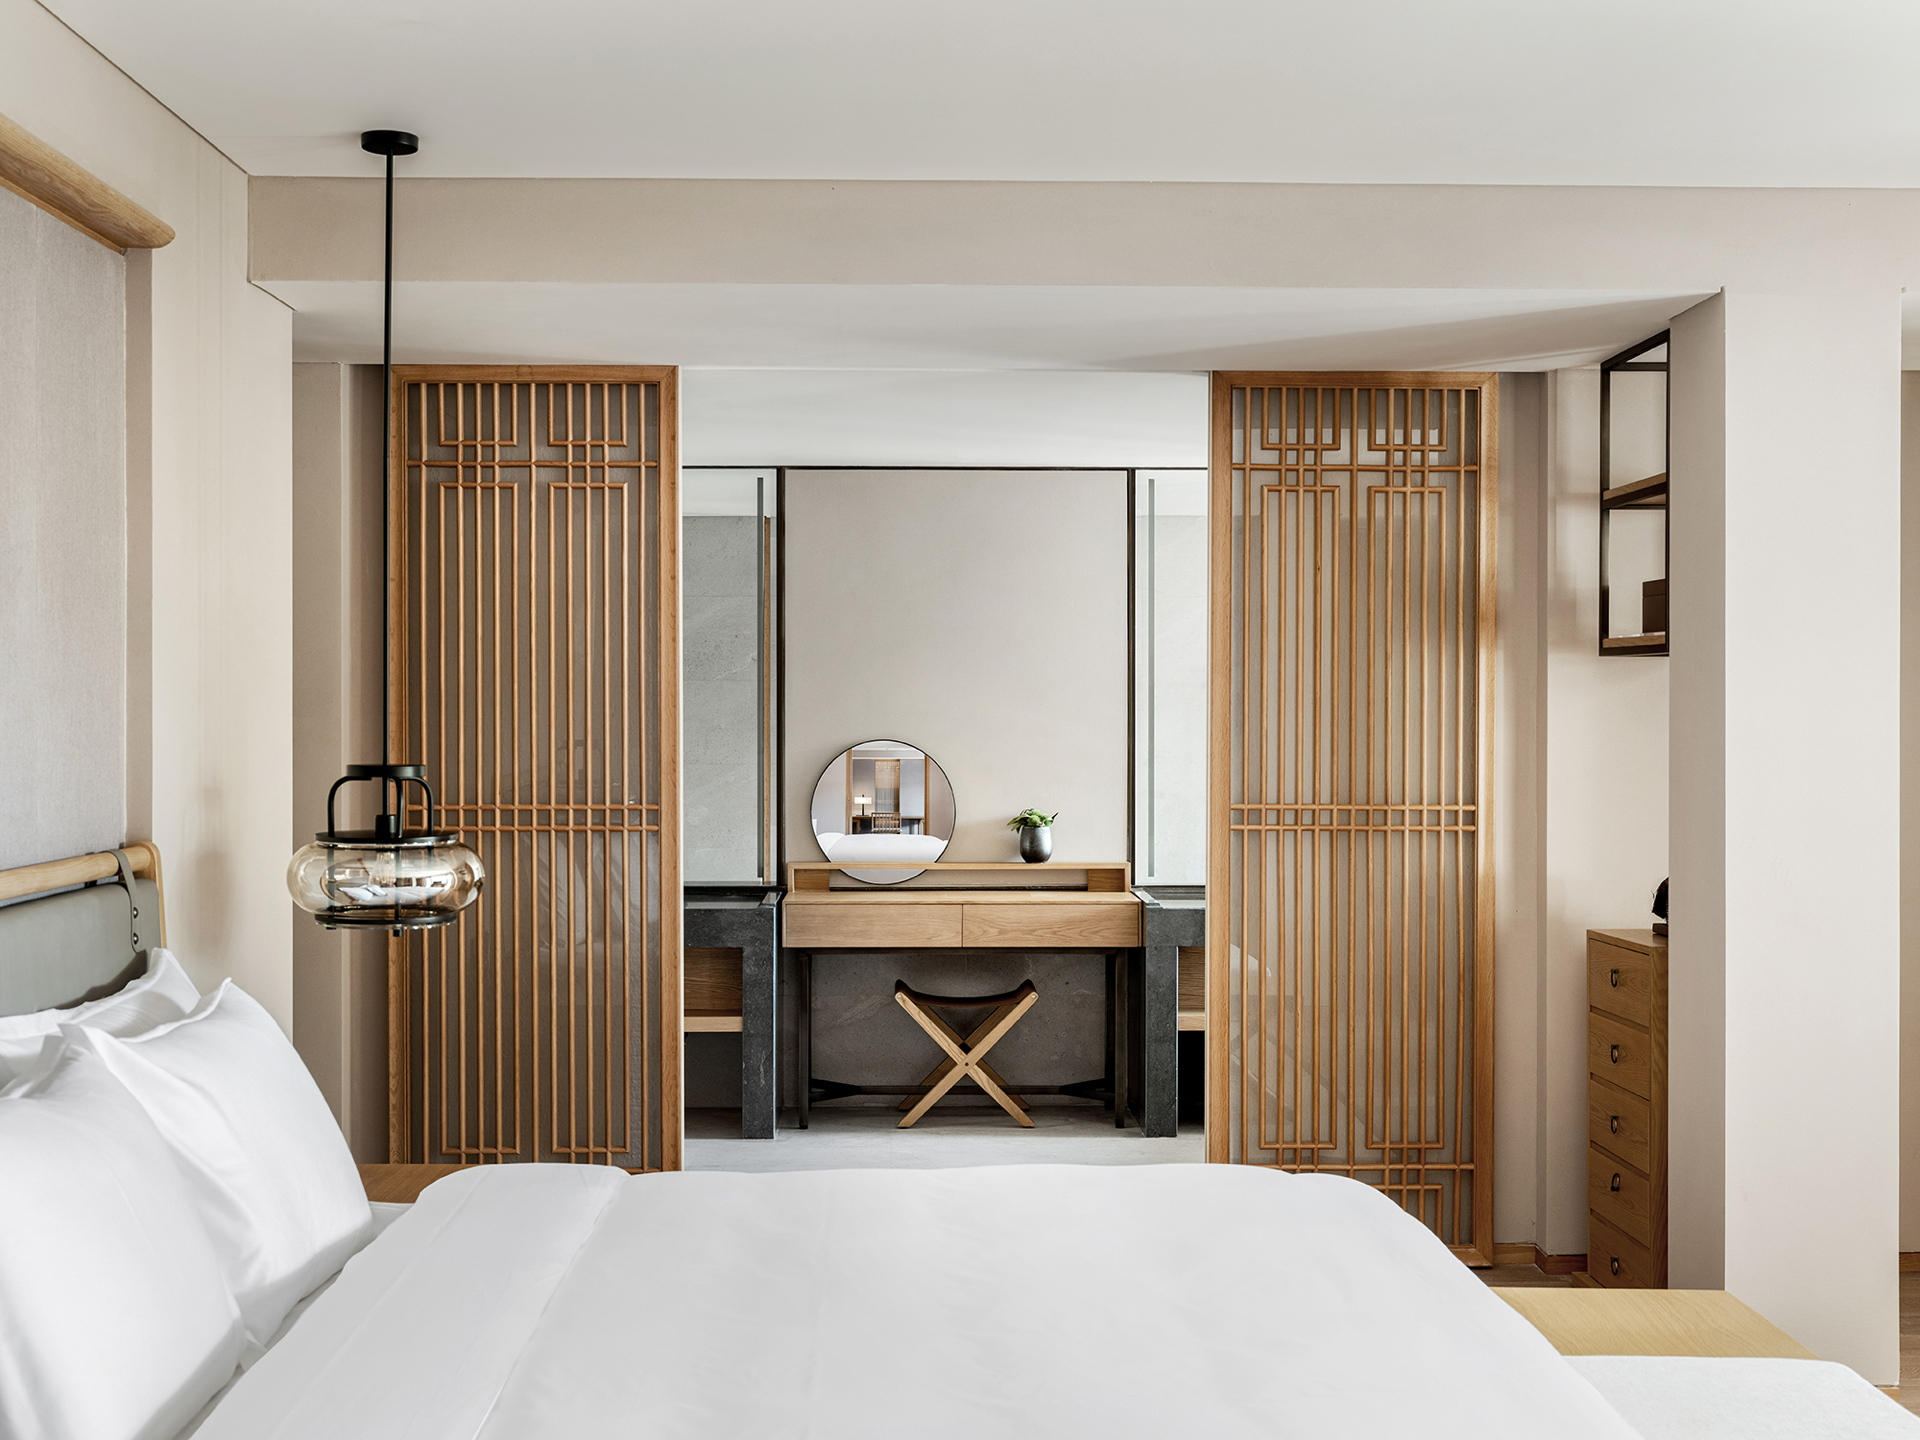 Makeover Of The Sunriver Resort Spa In Huangshan By Ccd Livegreenblog